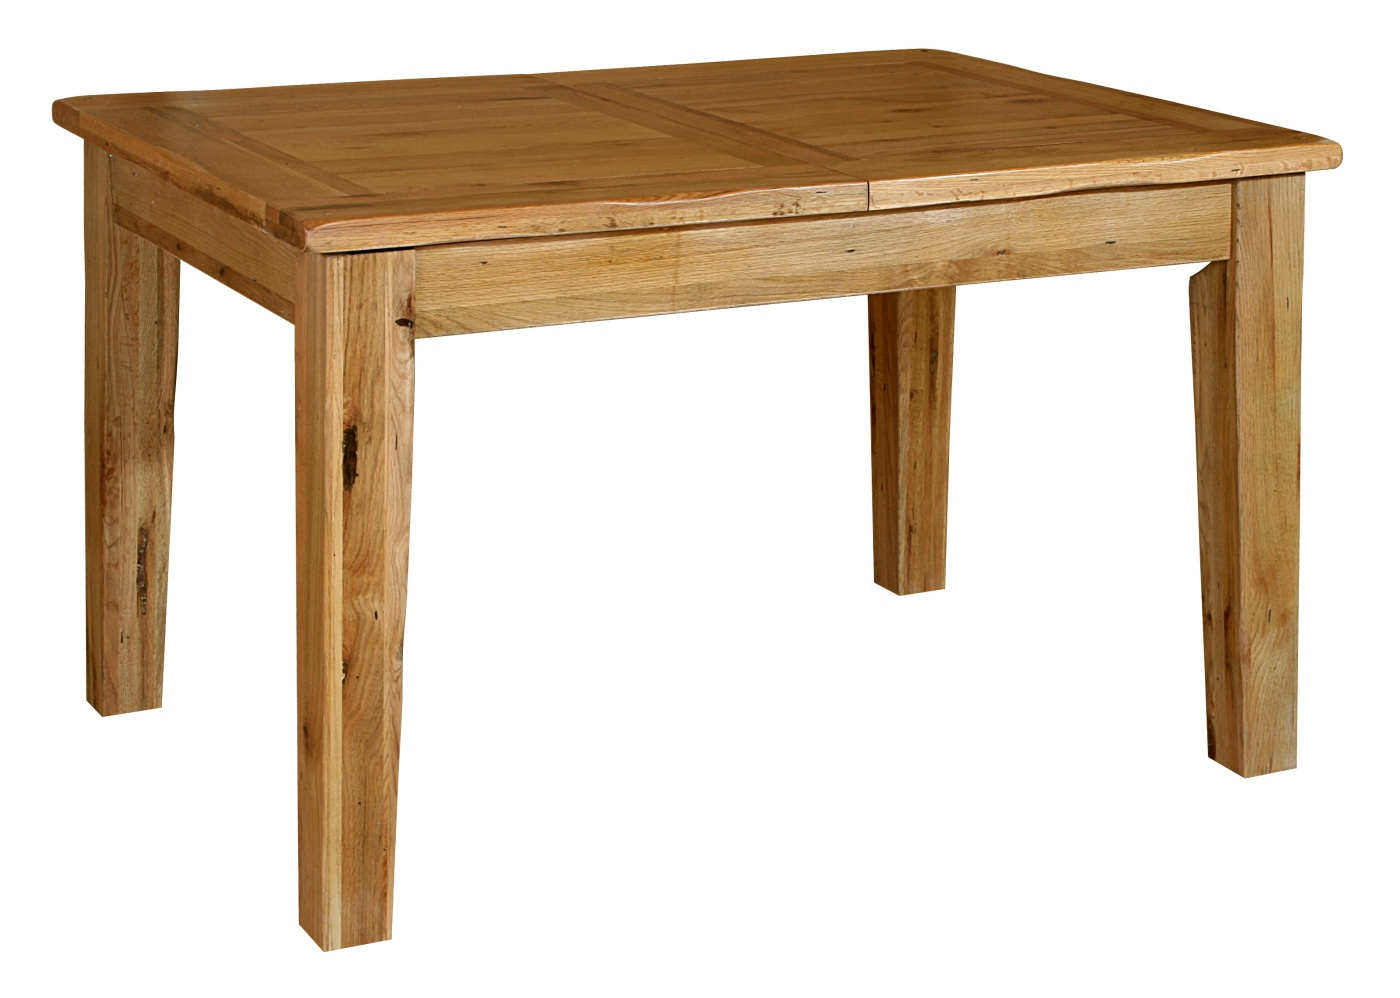 Tuscany solid oak dining room furniture extending dining